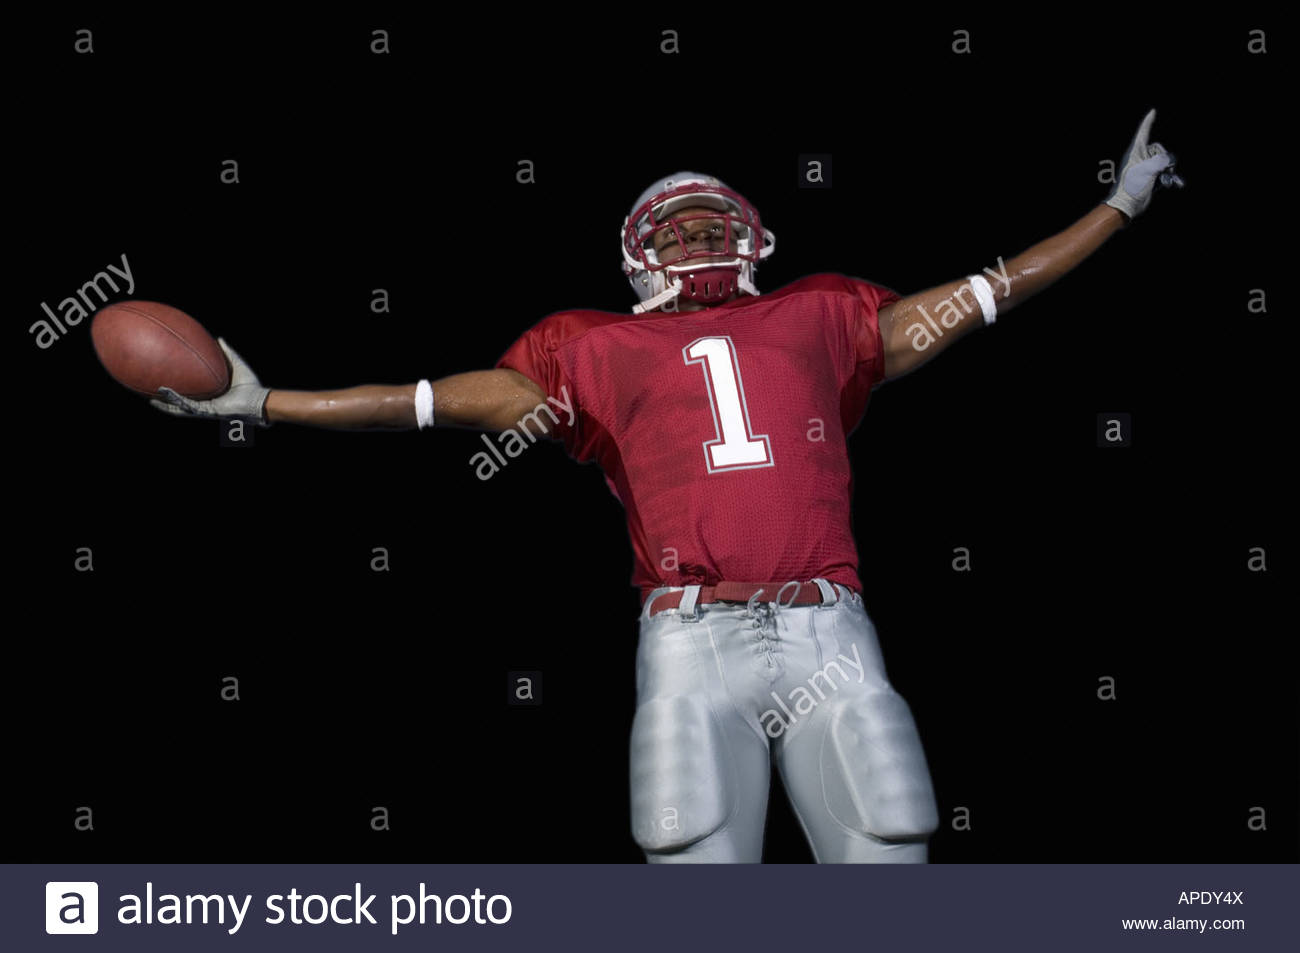 African football player arms outstretched - Stock Image